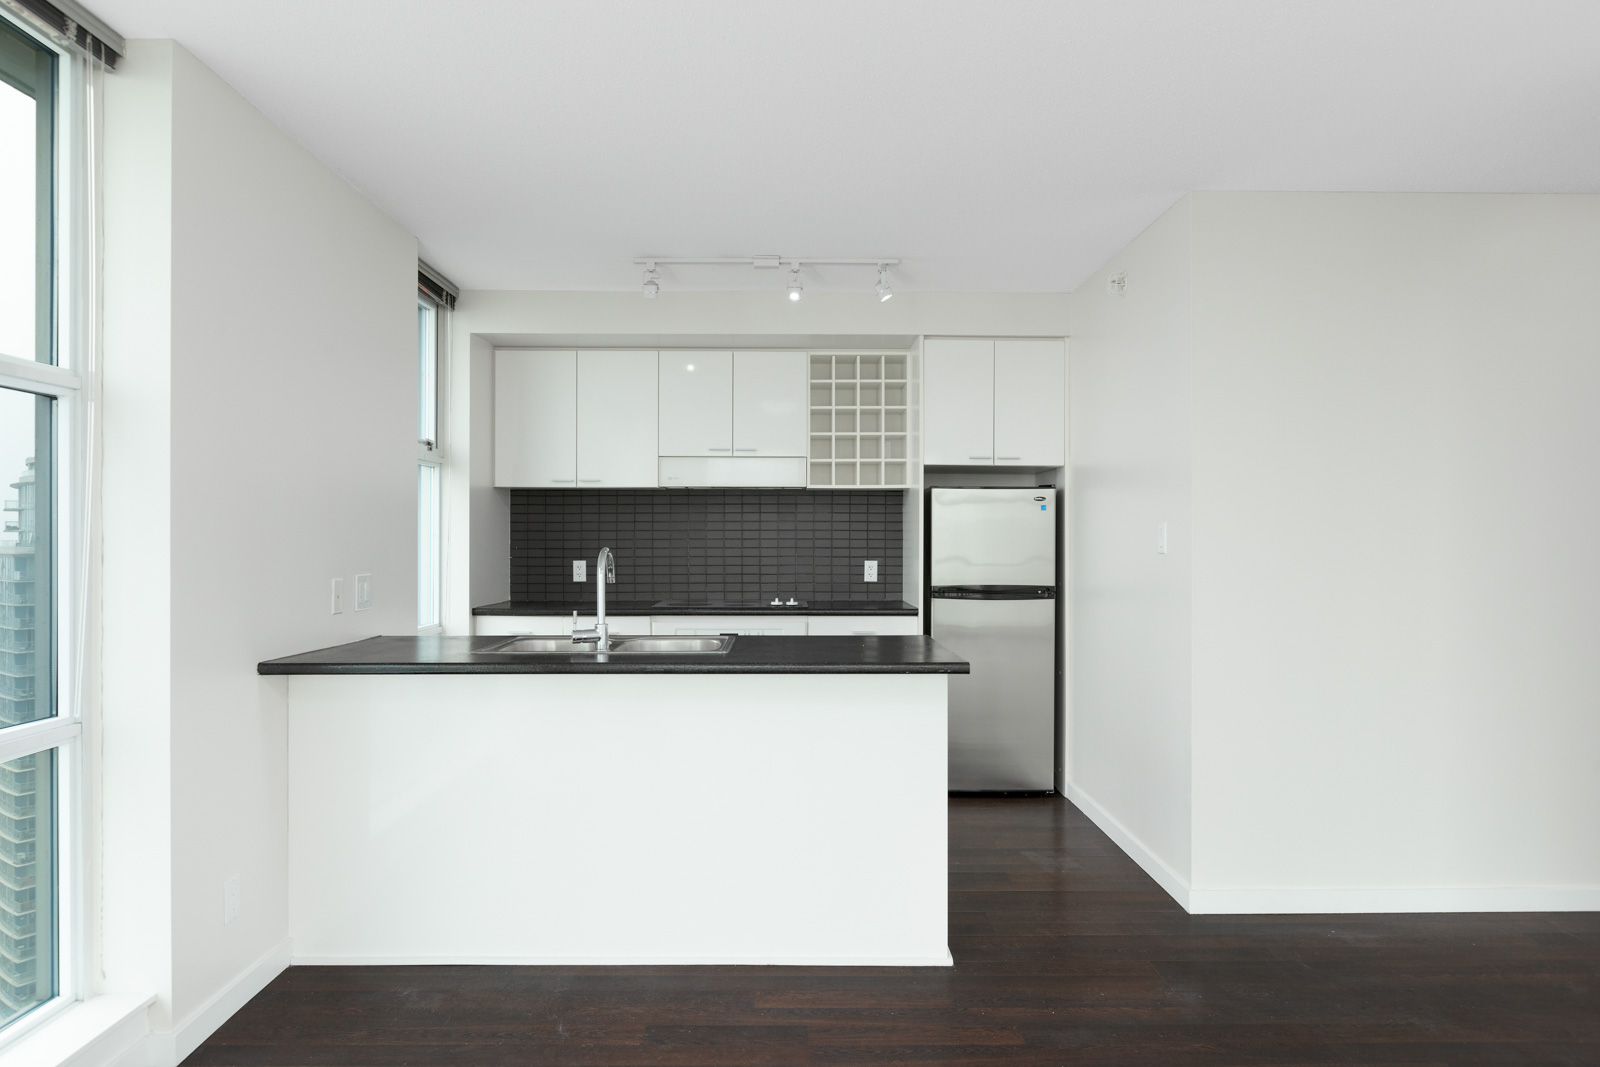 kitchen with counter and stainless steel refrigerator in rental condo at spectrum 4 in chinatown vancouver